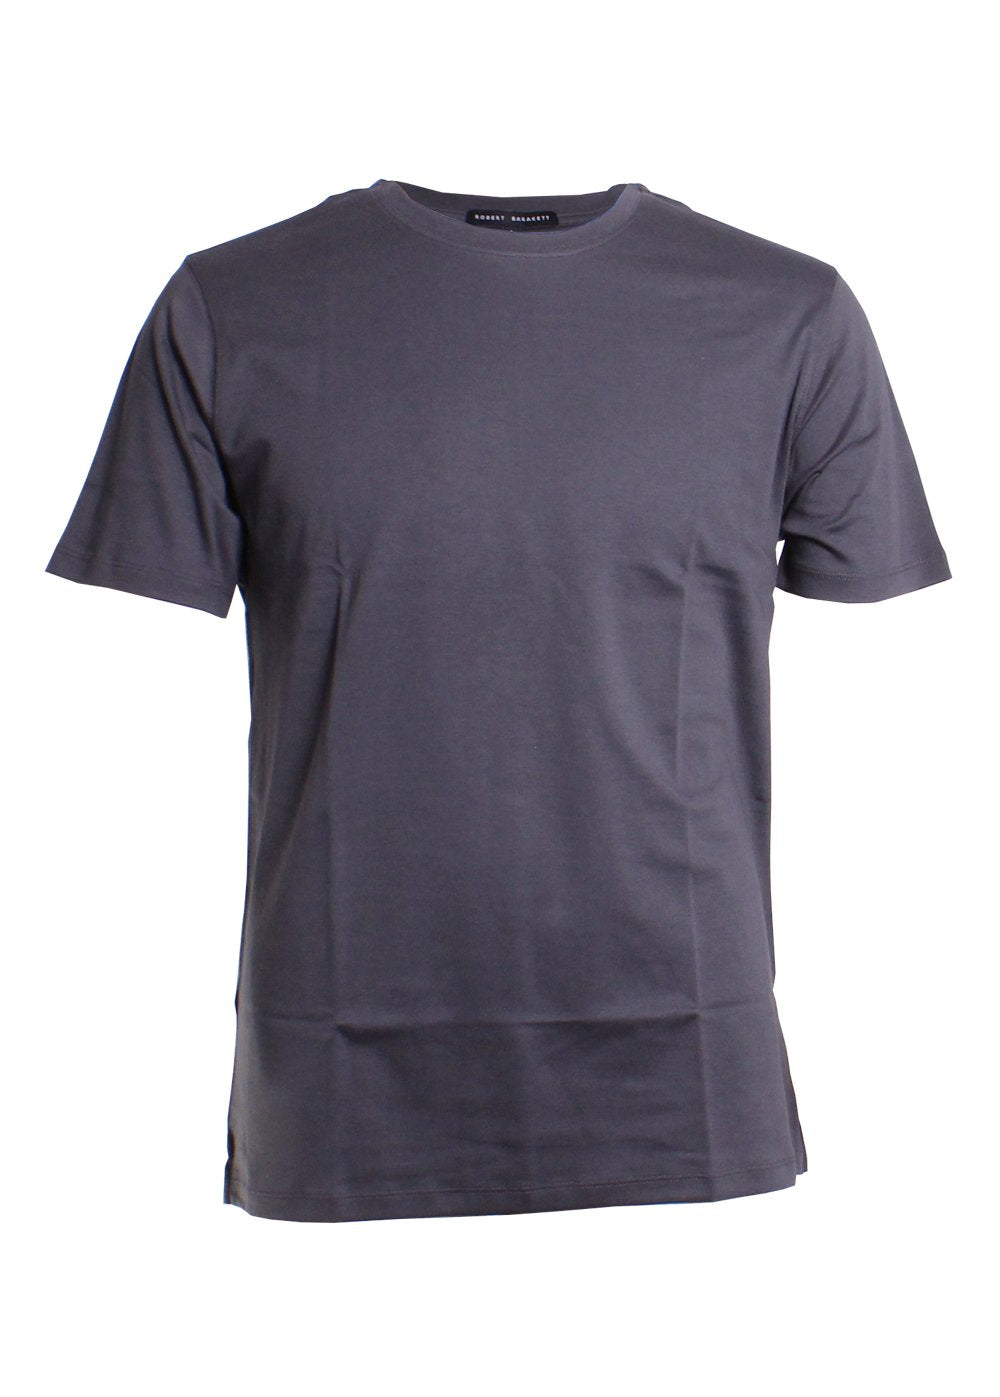 Robert Barakett Georgia Crew Neck T-Shirt in Iron